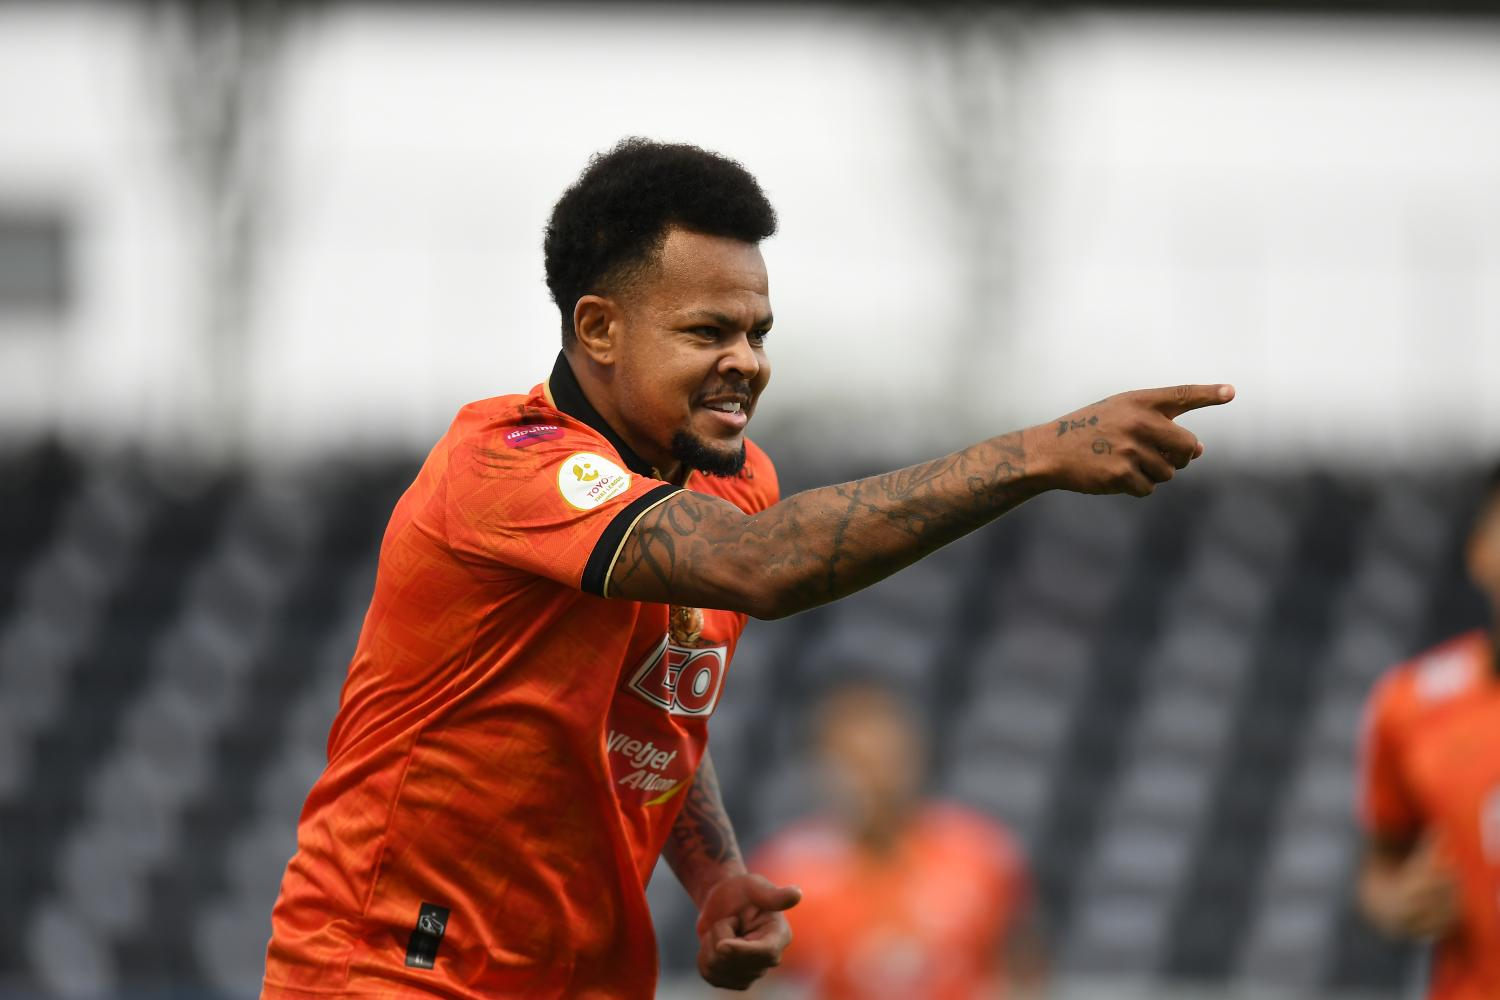 Chiang Rai's Bill Rosimar reacts after scoring a goal against Rayong on Sunday night.